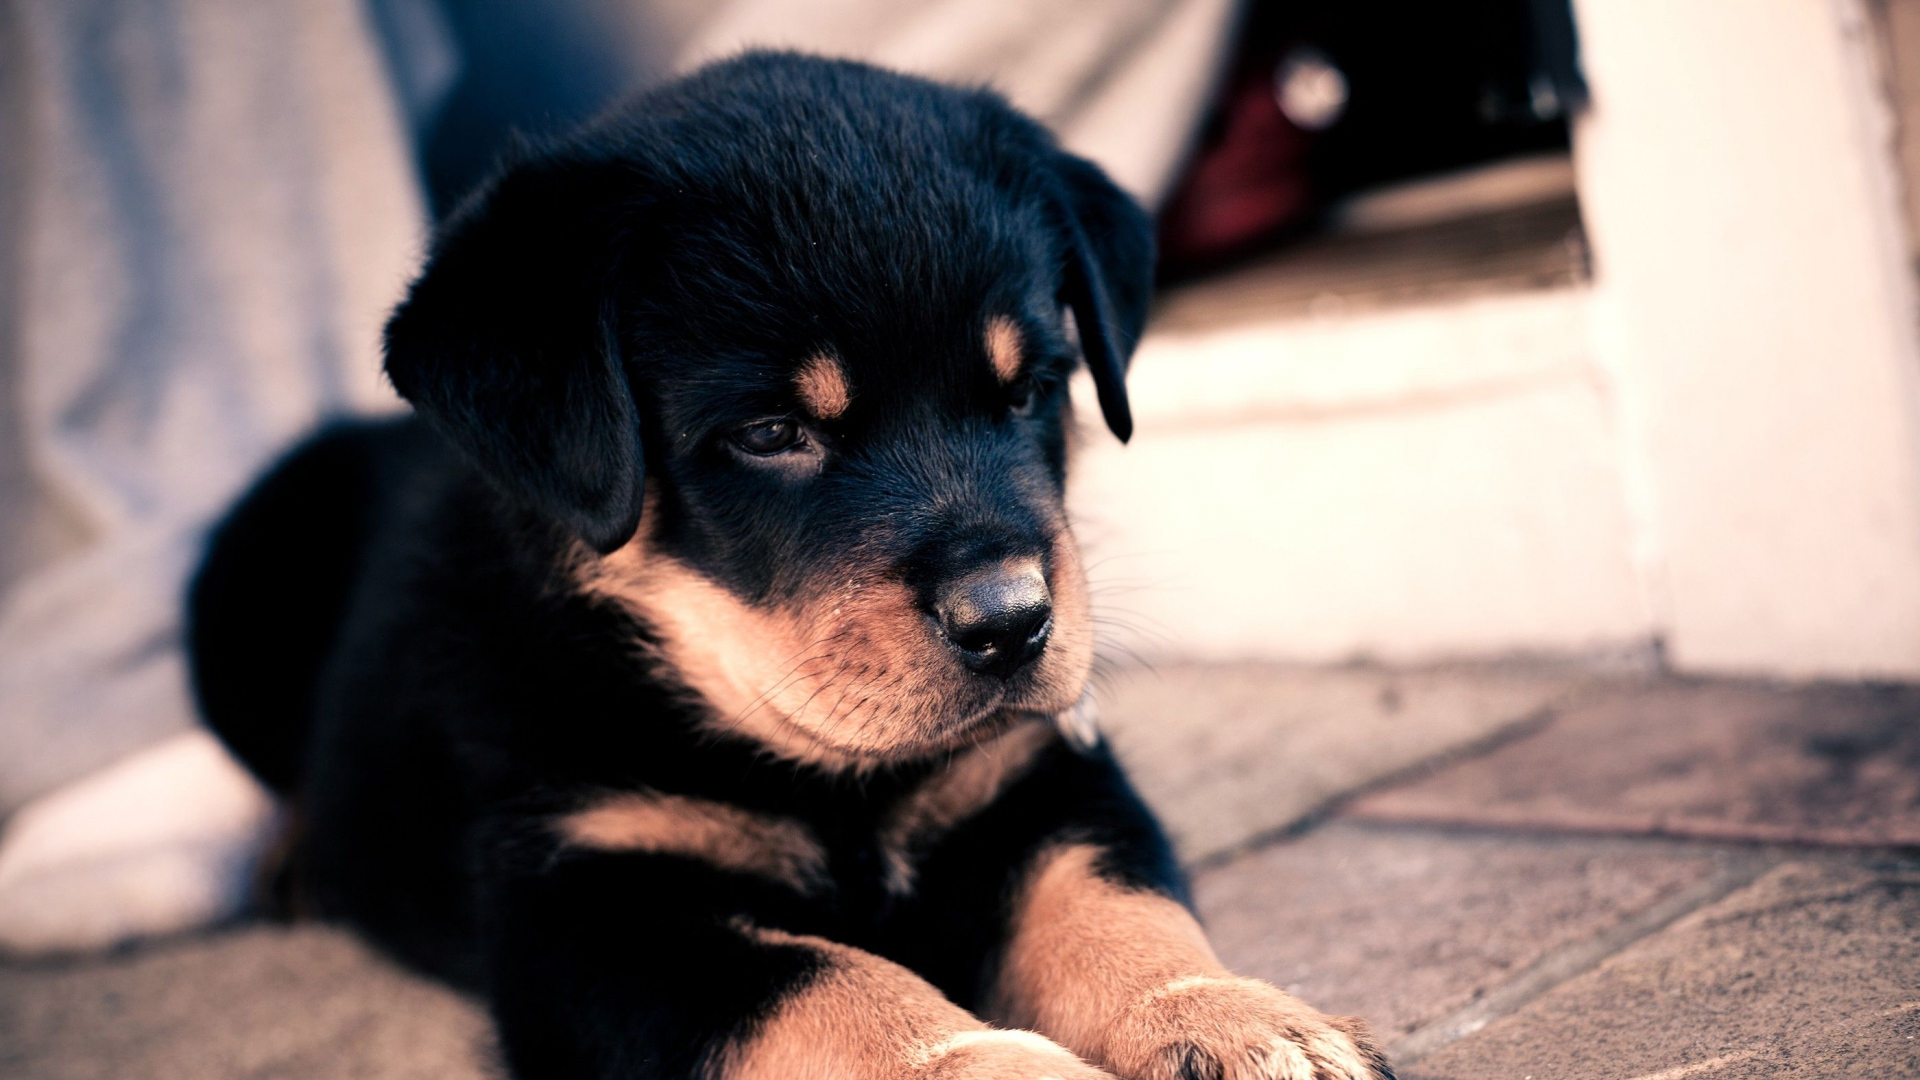 Download Saint Bernards Anime Adorable Dog - puppy_rottweiler_cute_baby_56168_1920x1080  Pictures_69130  .jpg